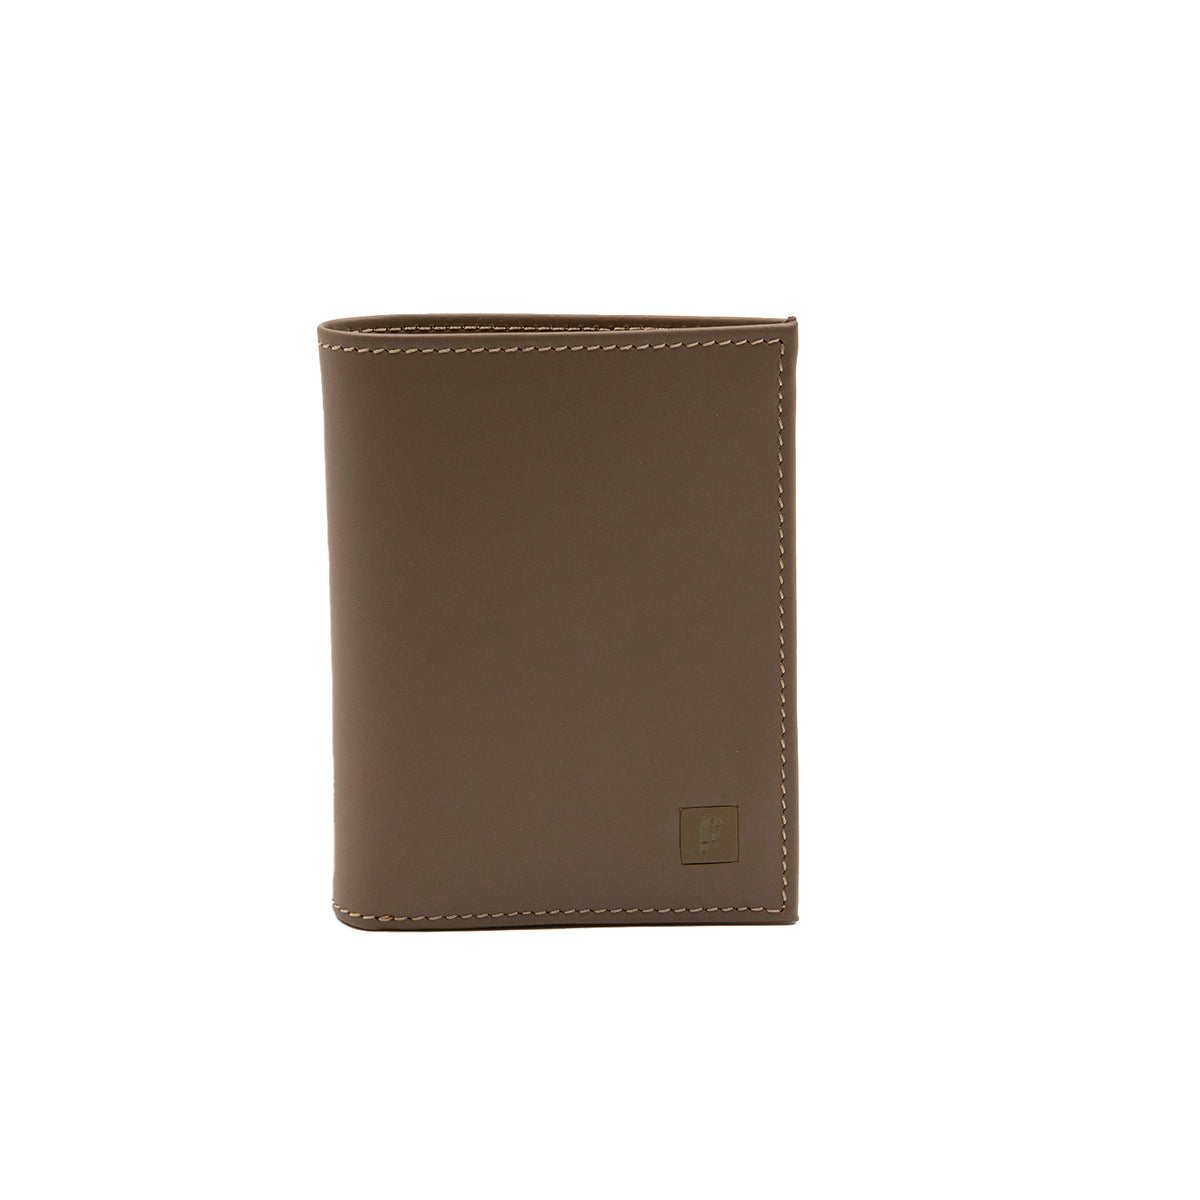 OXFORD LEATHER OLIVE BROWN F BY FARADA WALLET (MWITF109)